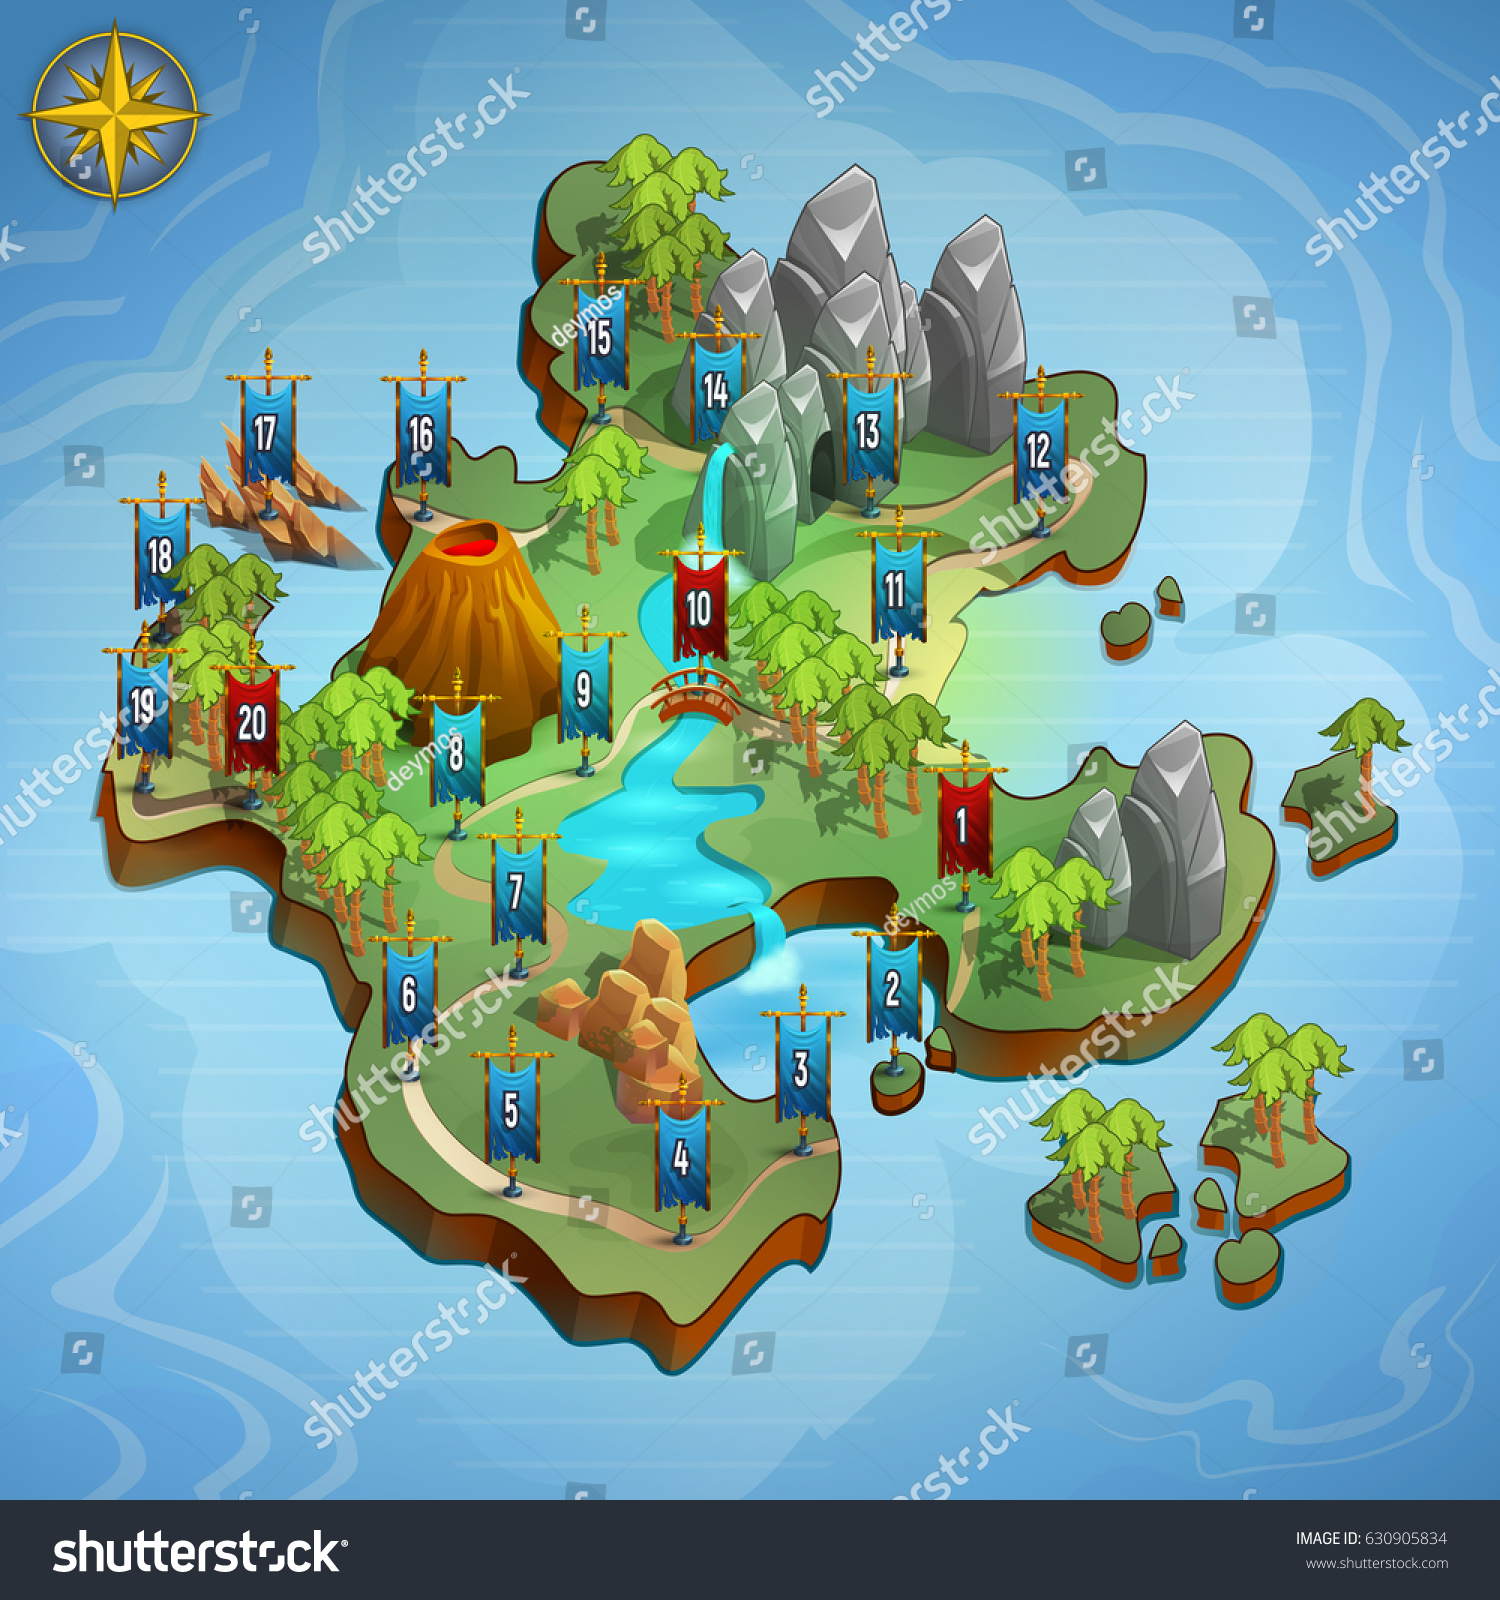 Level maps game example user interface vectores en stock 630905834 level maps for game example user interface of game vector illustration gumiabroncs Images